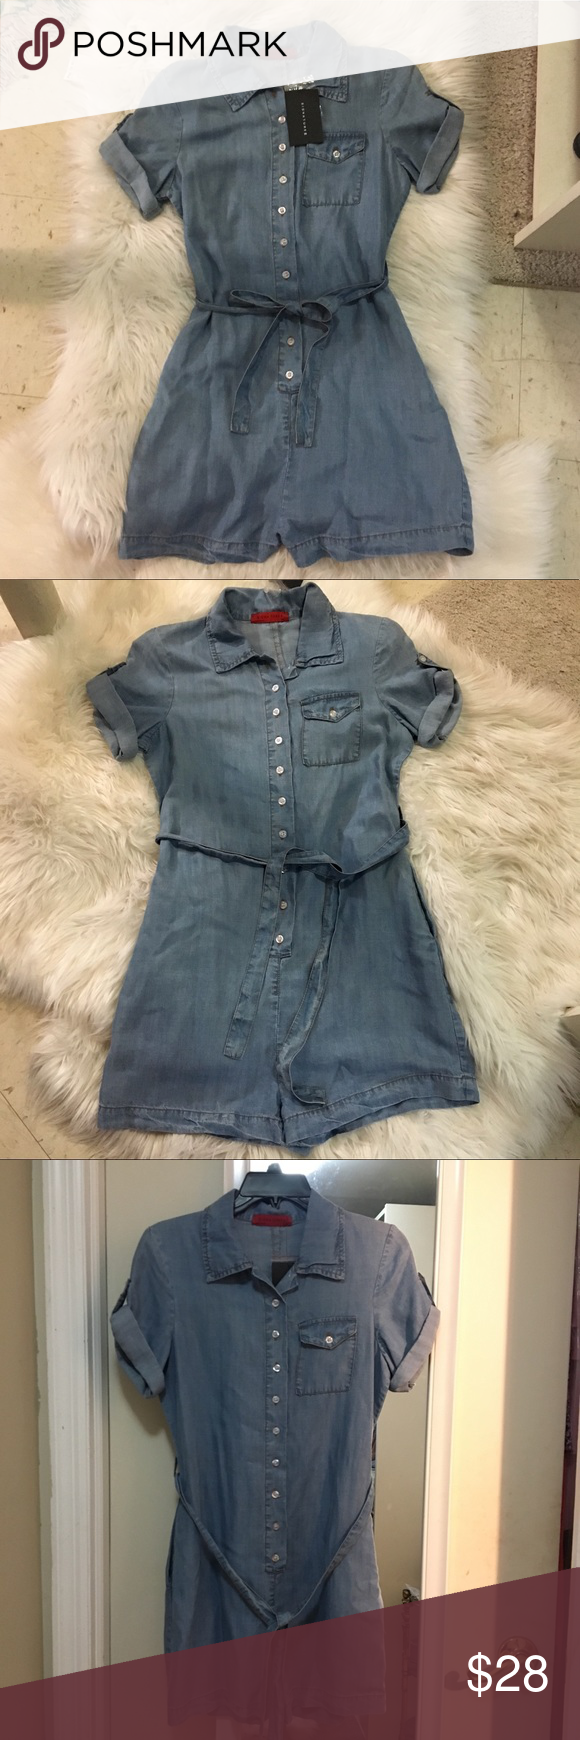 3c4b134d010f NWT Denim romper size small Denim romper new with tags never worn perfect  condition. First pic is of model wearing it. Size small can also can fit  extra ...